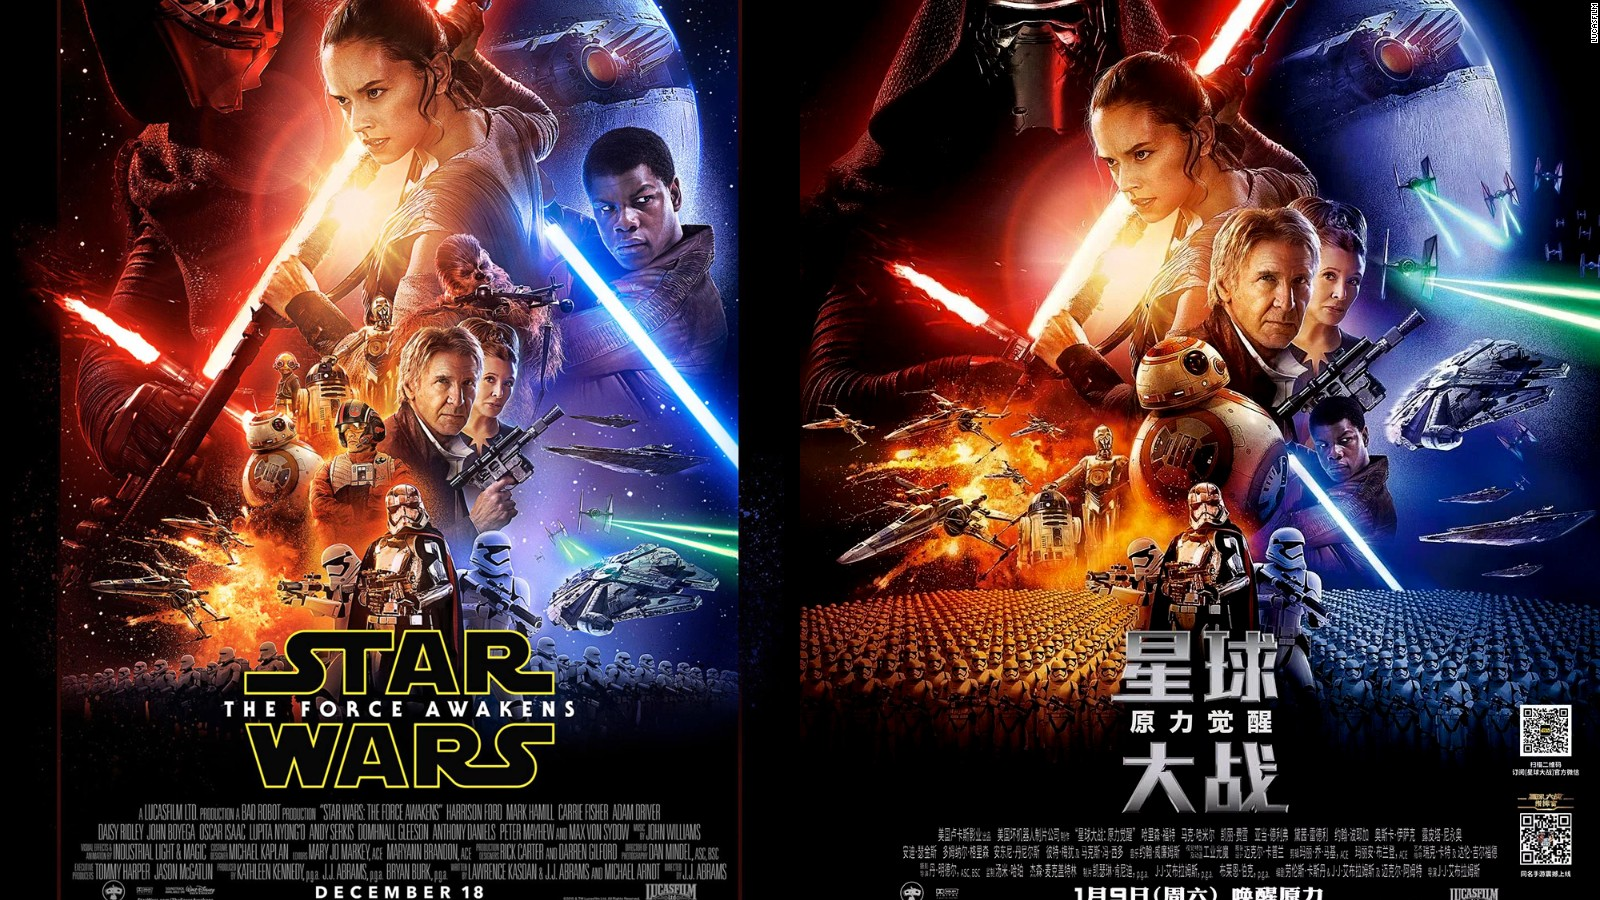 Star Wars: The Force Awakens' China poster 'racist' - CNN